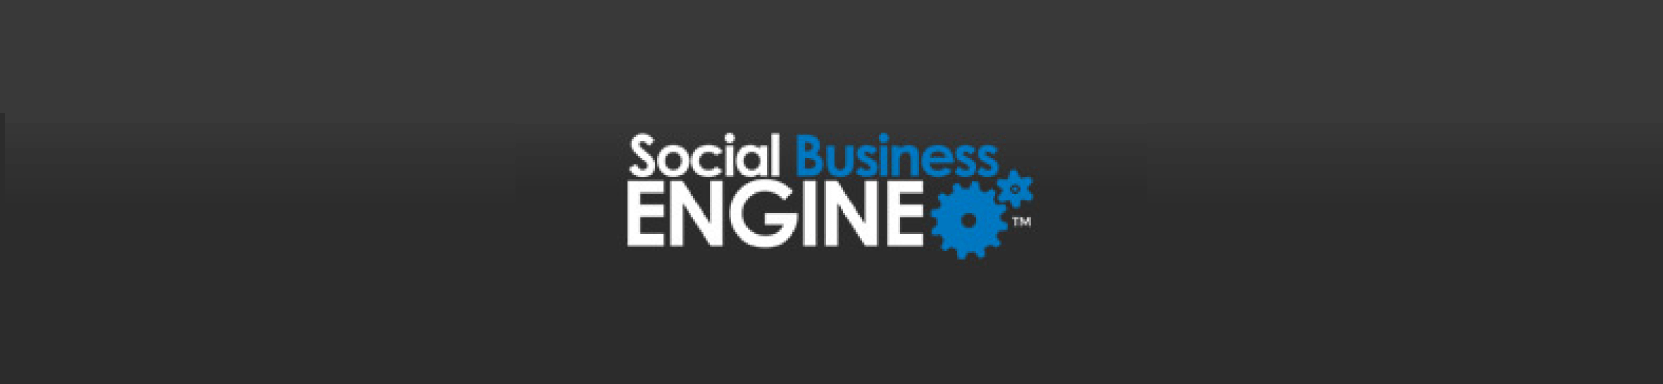 Social Business Engine Social media Marketing Podcast